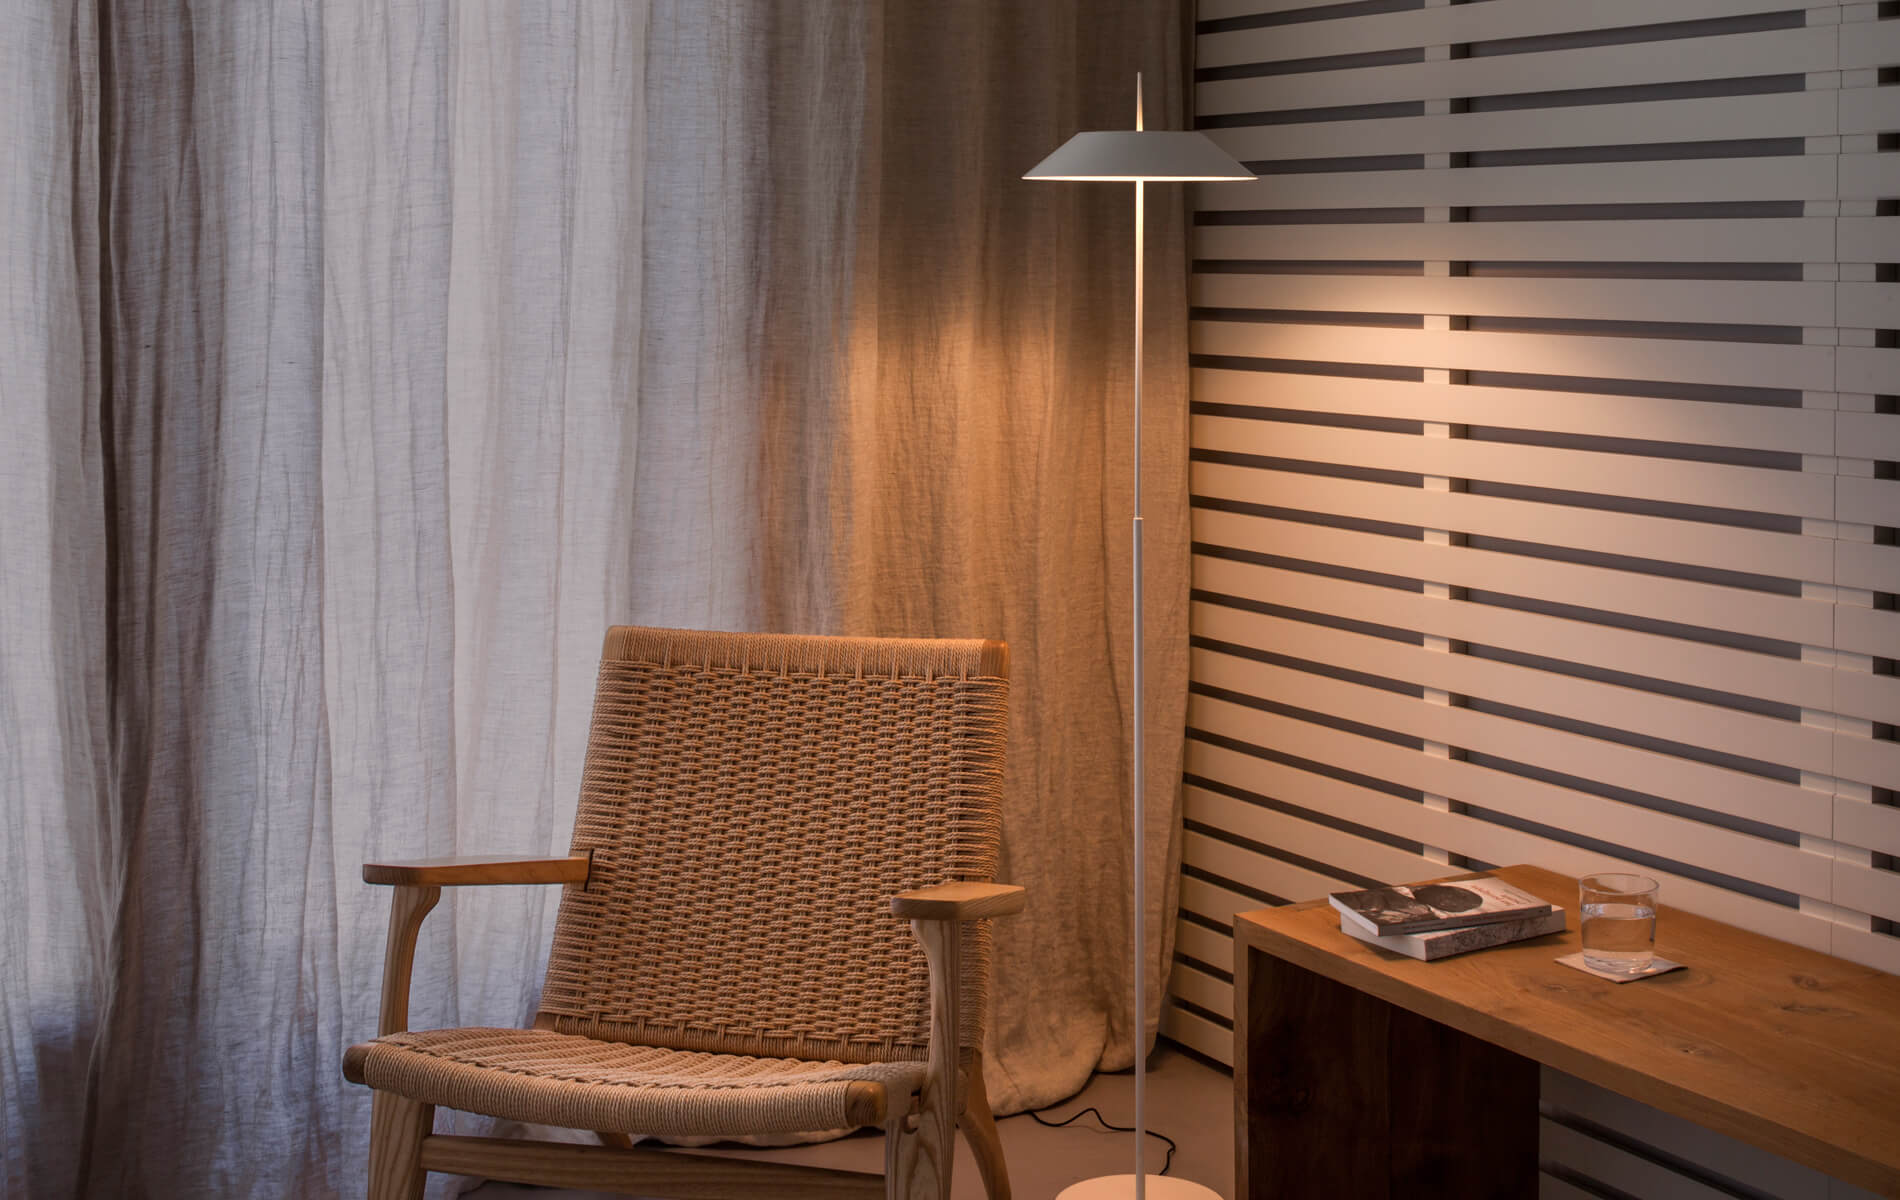 More information of Vibia MAYFAIR floor lamp